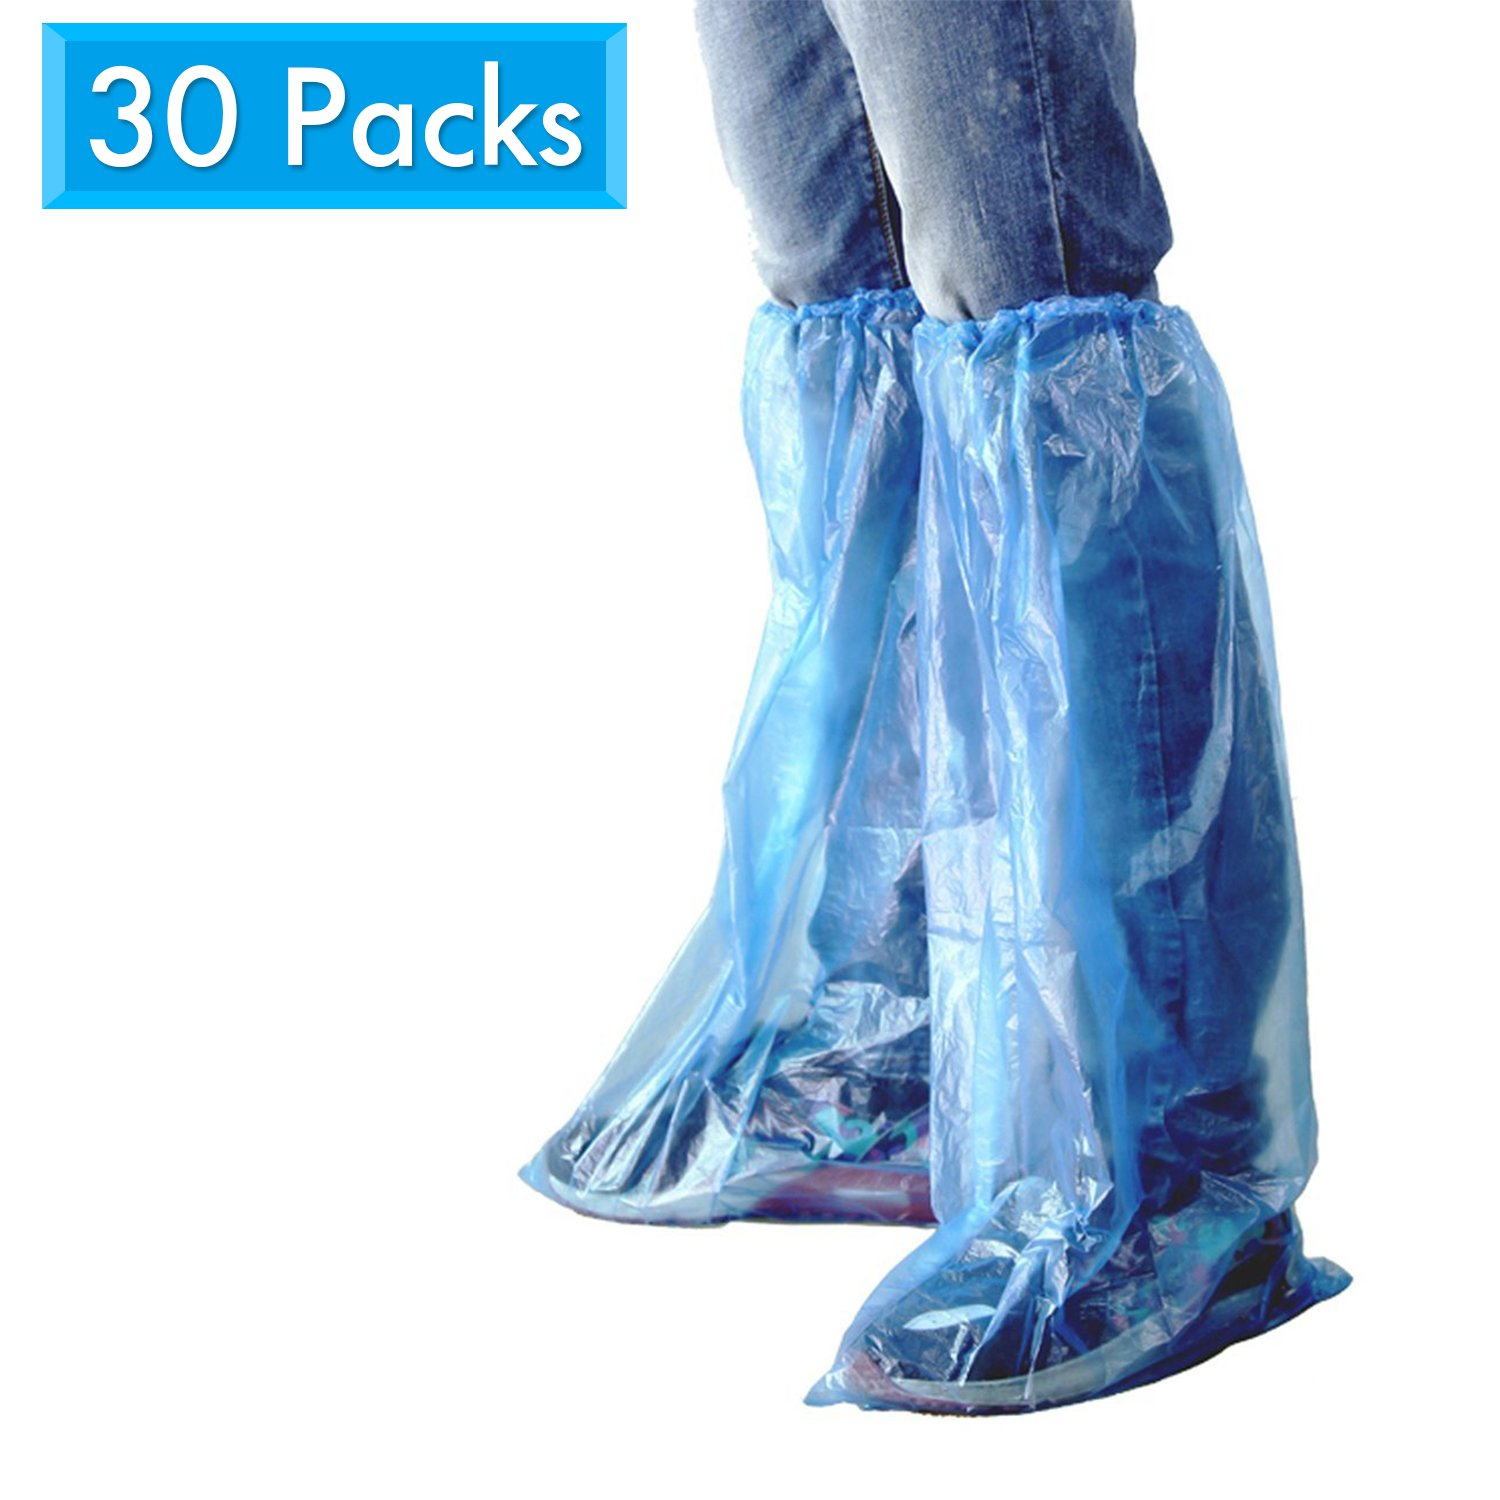 462da67d0954b HUABEI 30 Pack Disposable Shoe Covers Blue Rain Shoes and Boots ...